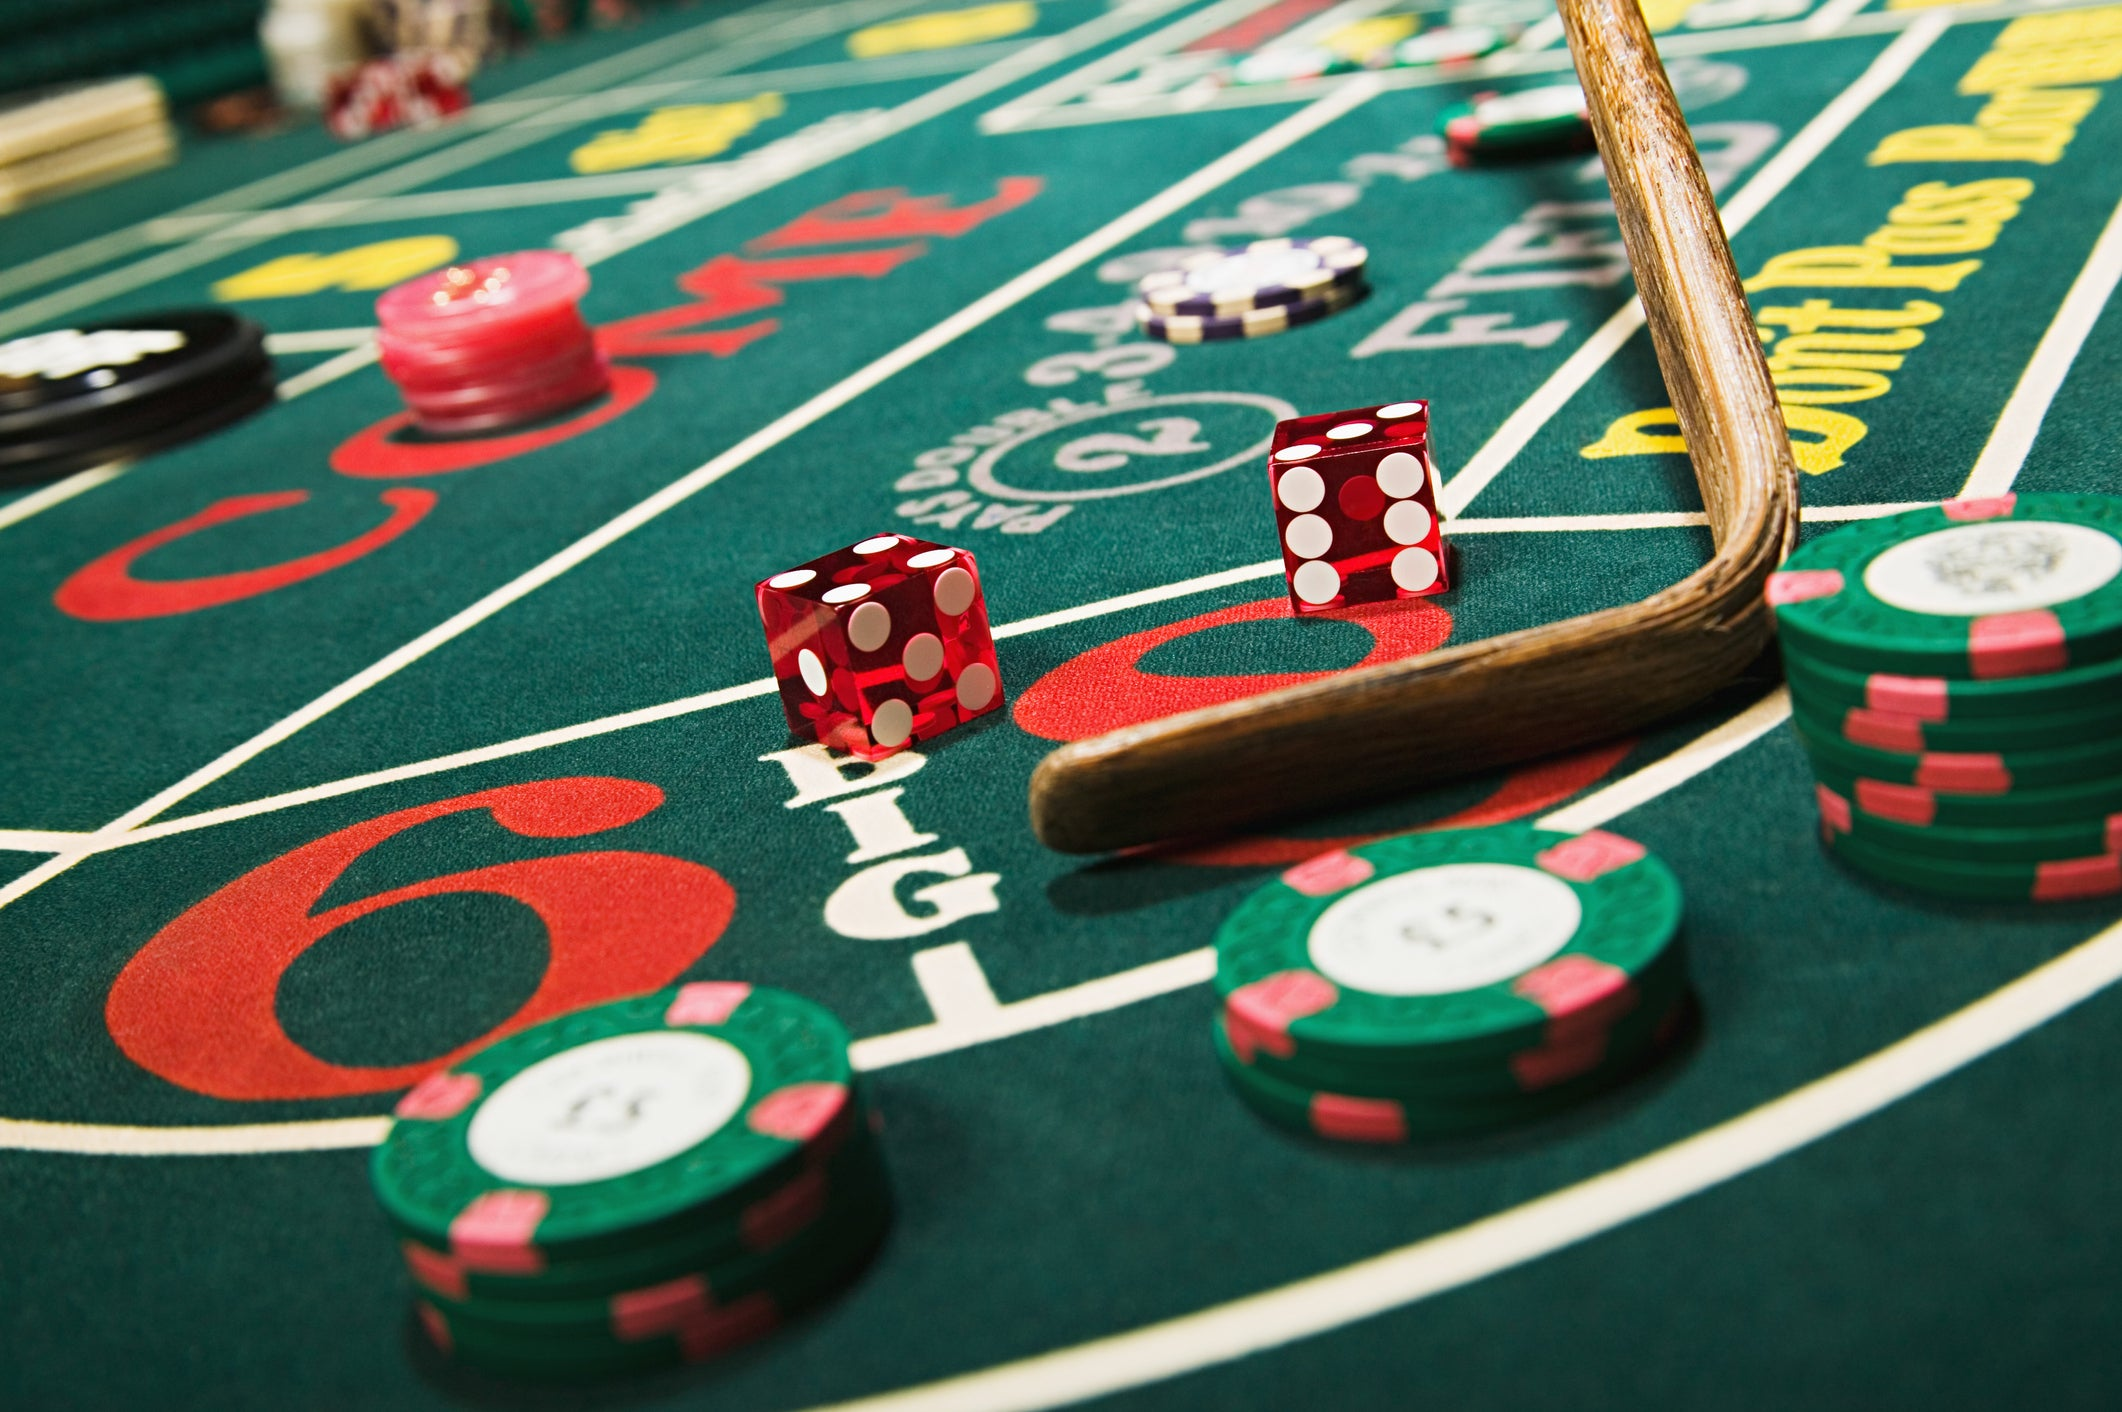 3 Top Gambling Stocks to Watch in July | The Motley Fool